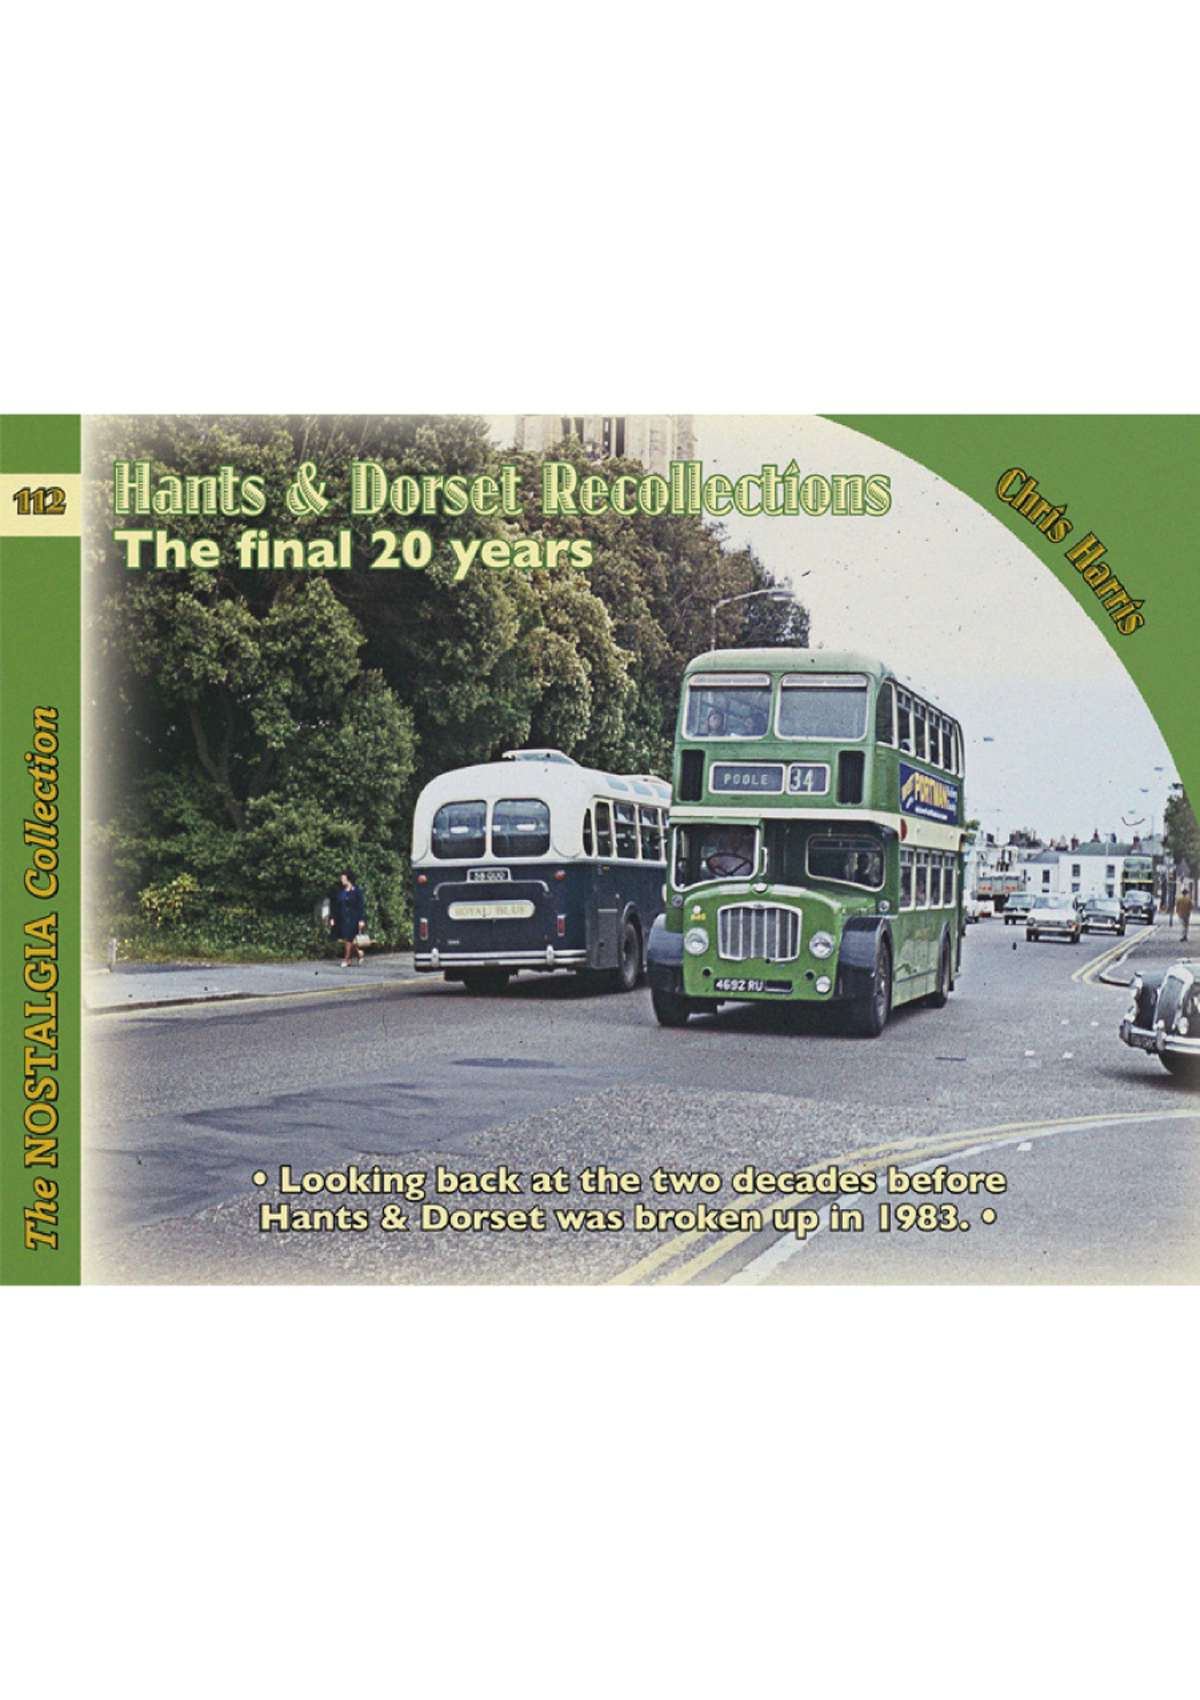 5782 - Hants & Dorset Recollections: The Final 20 Years